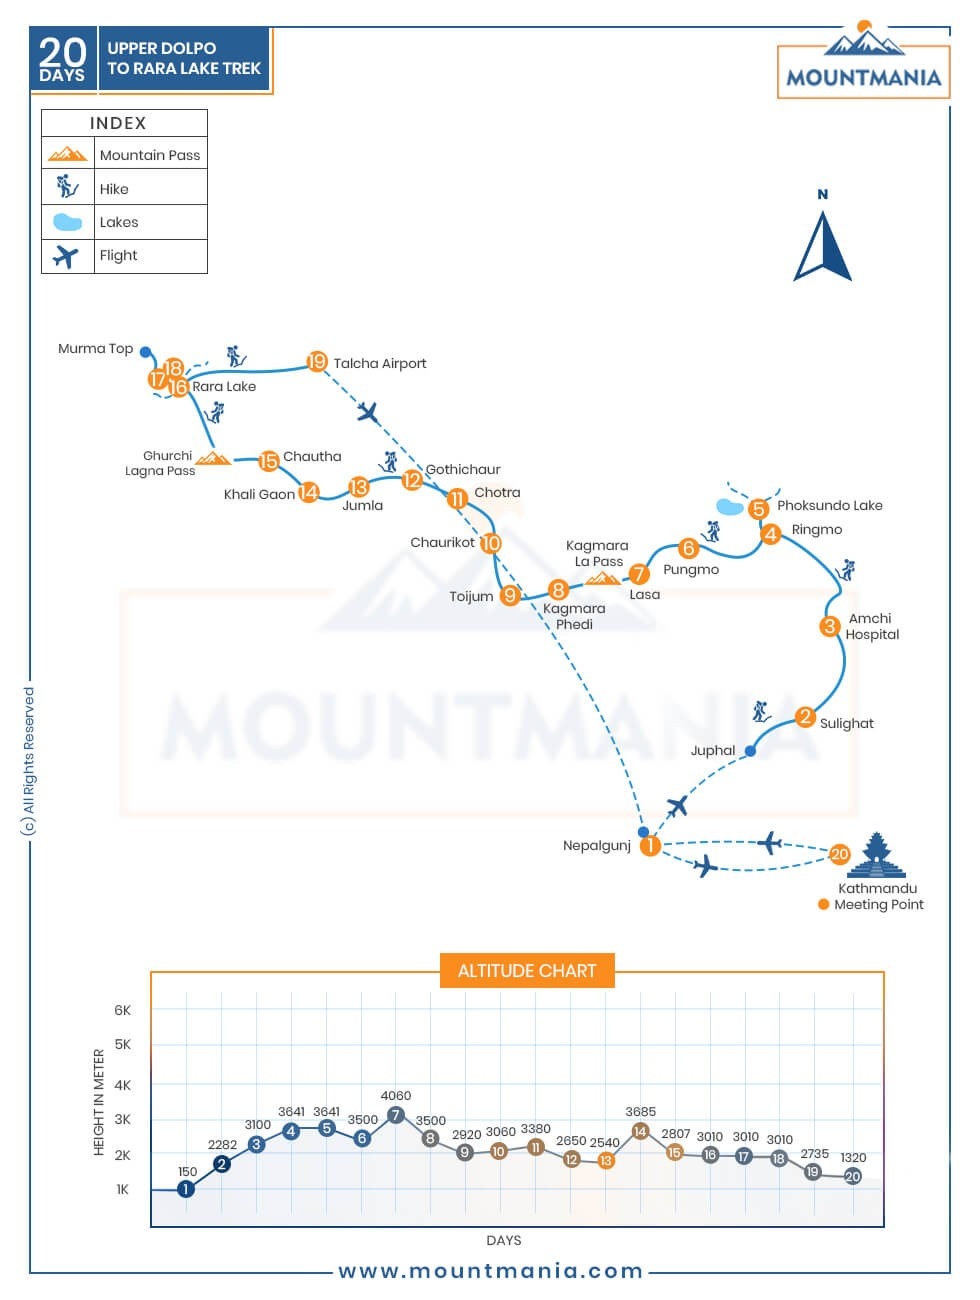 Upper Dolpo to Rara Lake Trek map